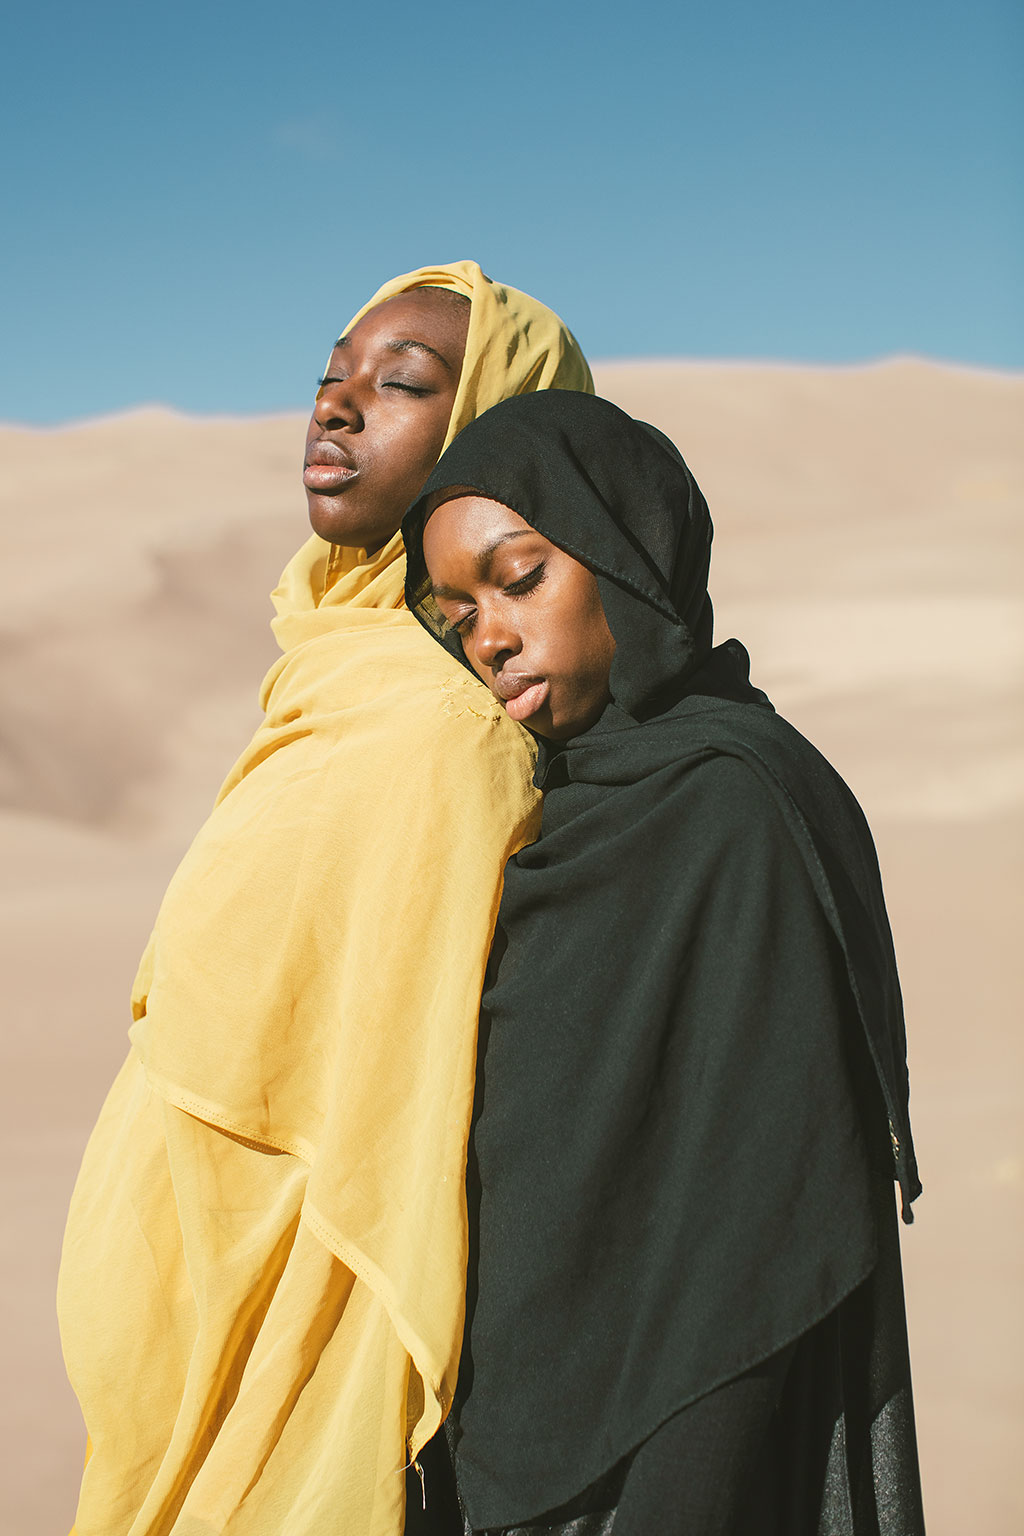 May-Fresh-New-Images-Offset-Two-Girls-in-Desert